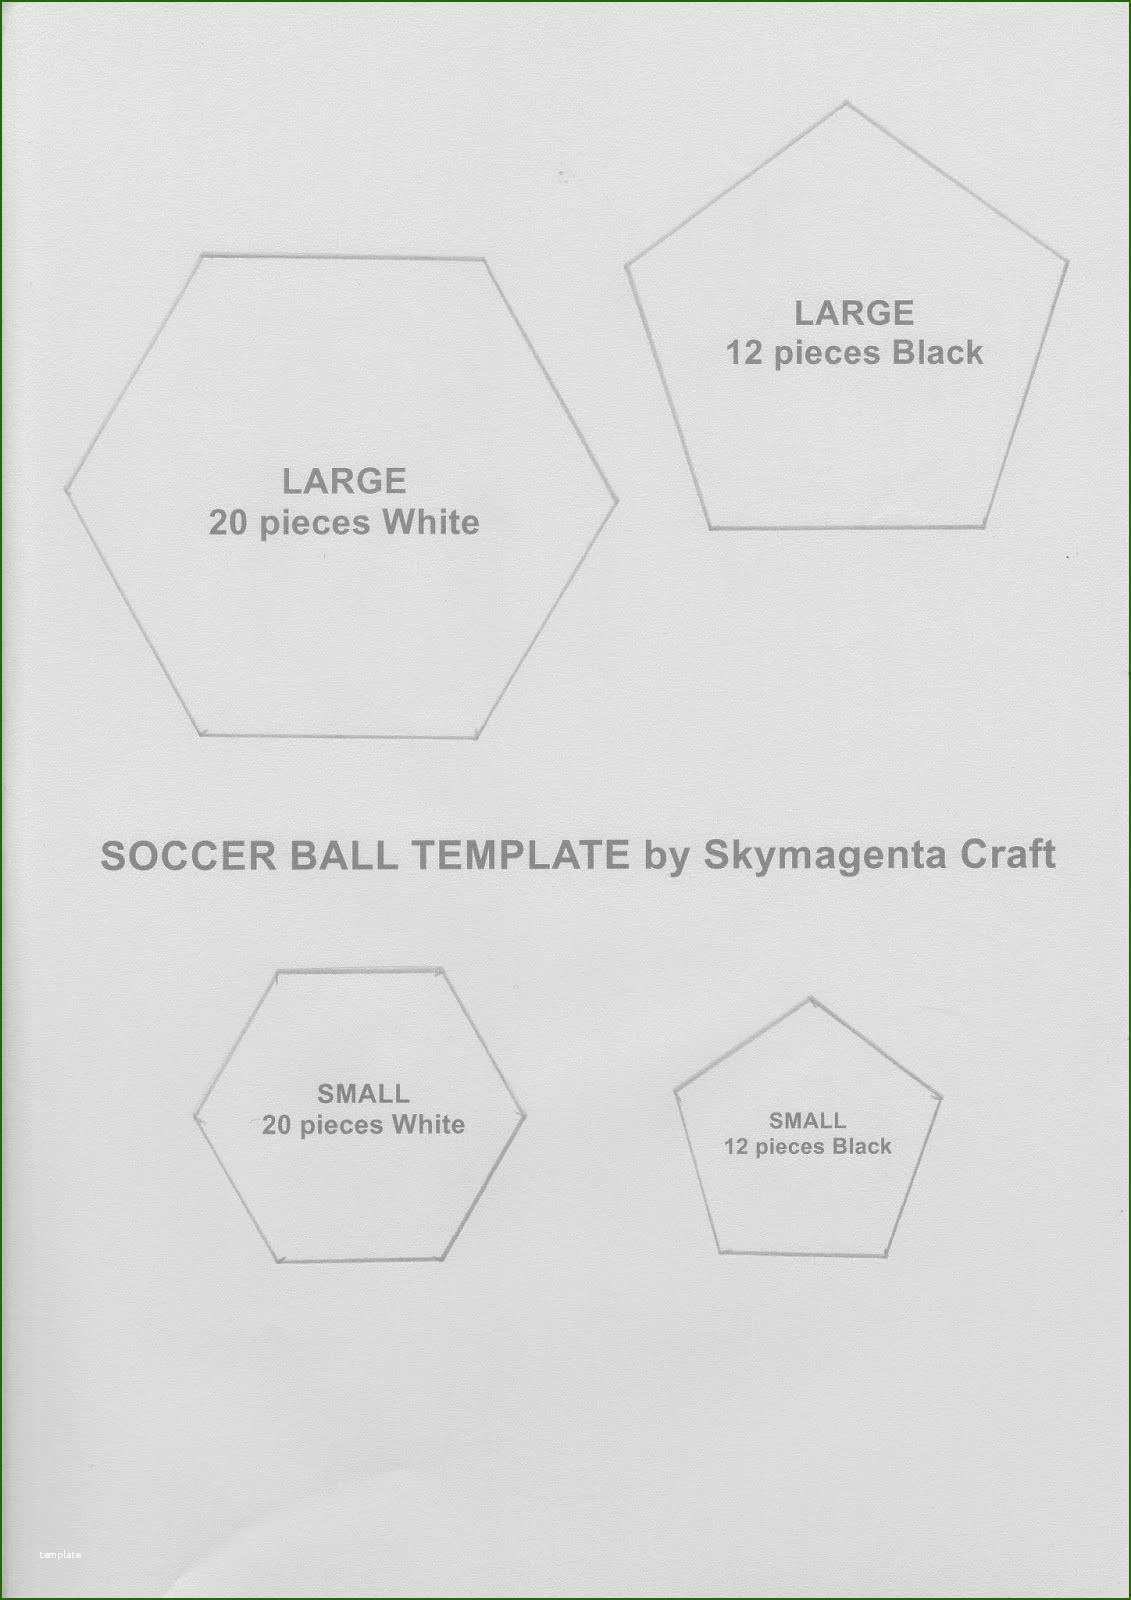 Soccer Ball Cake Template 17 Tendency That Prove Your Strands Soccer Ball Cake Soccer Cake Soccer Ball